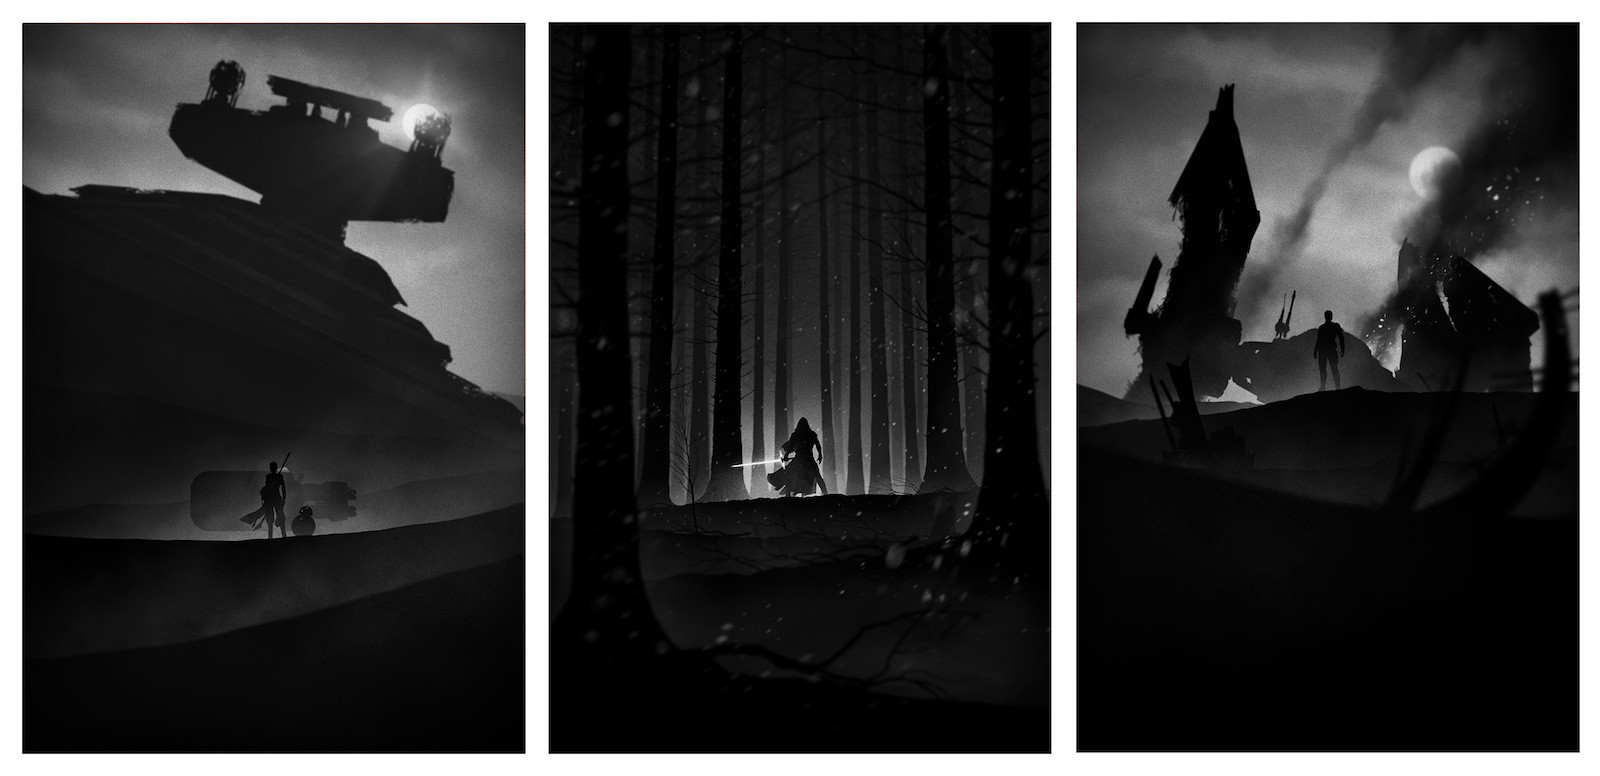 'The Force Awakens' - Noir Style - Rey, Kylo Ren, Rey Noir Set by Marko Manev